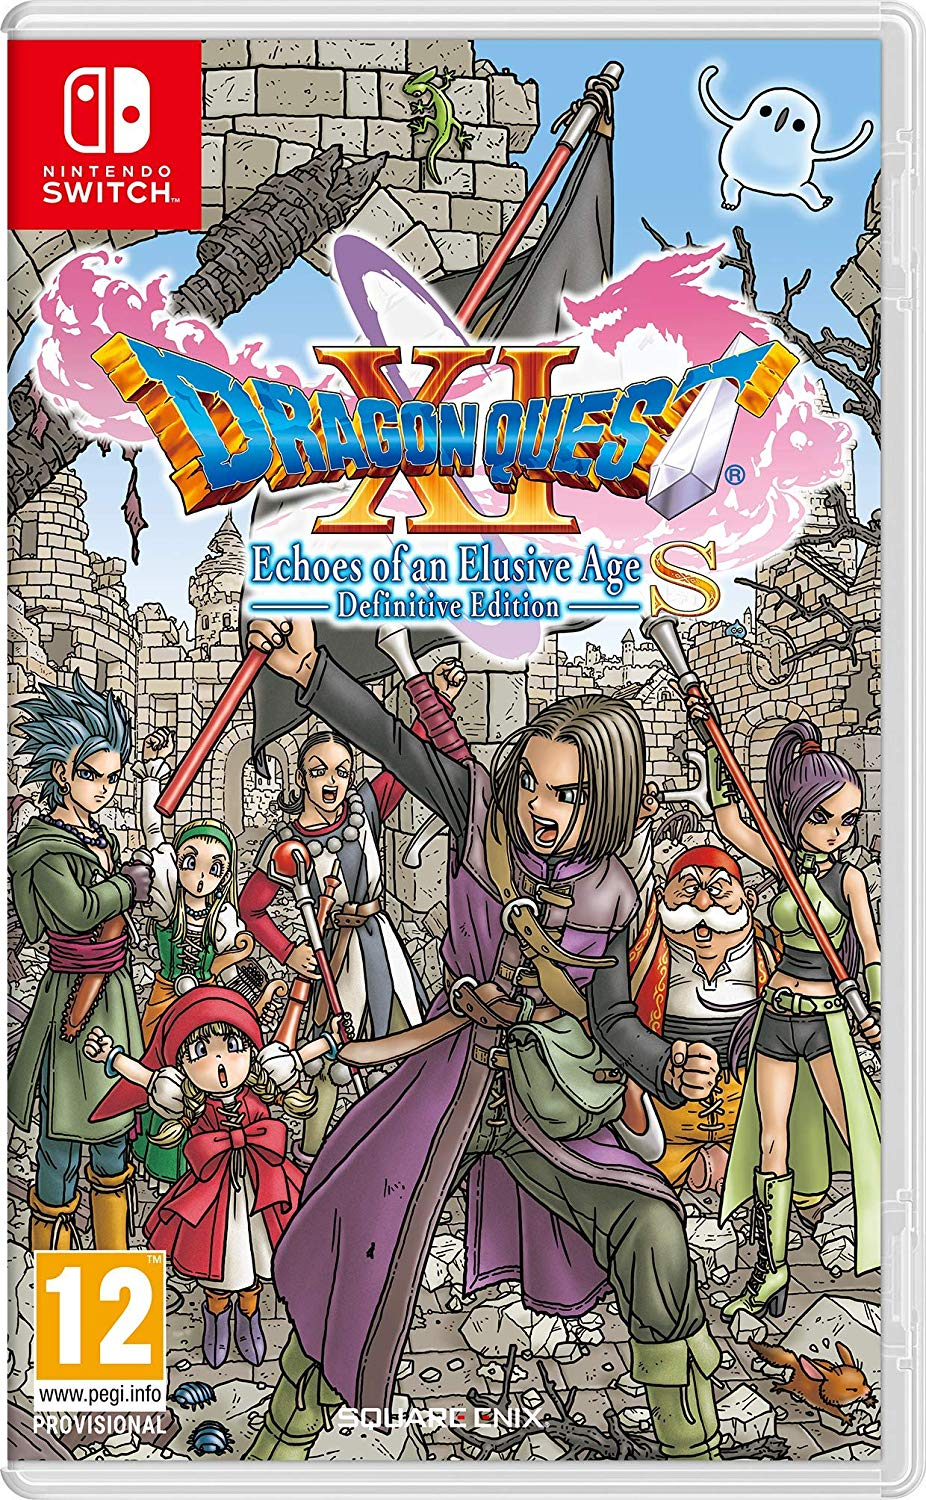 Dragon Quest XI S: Echoes of an Elusive Age - Definitive Edition - Nintendo Switch, Nintendo Switch, DVDMEGASTORE, DVDMEGASTORE